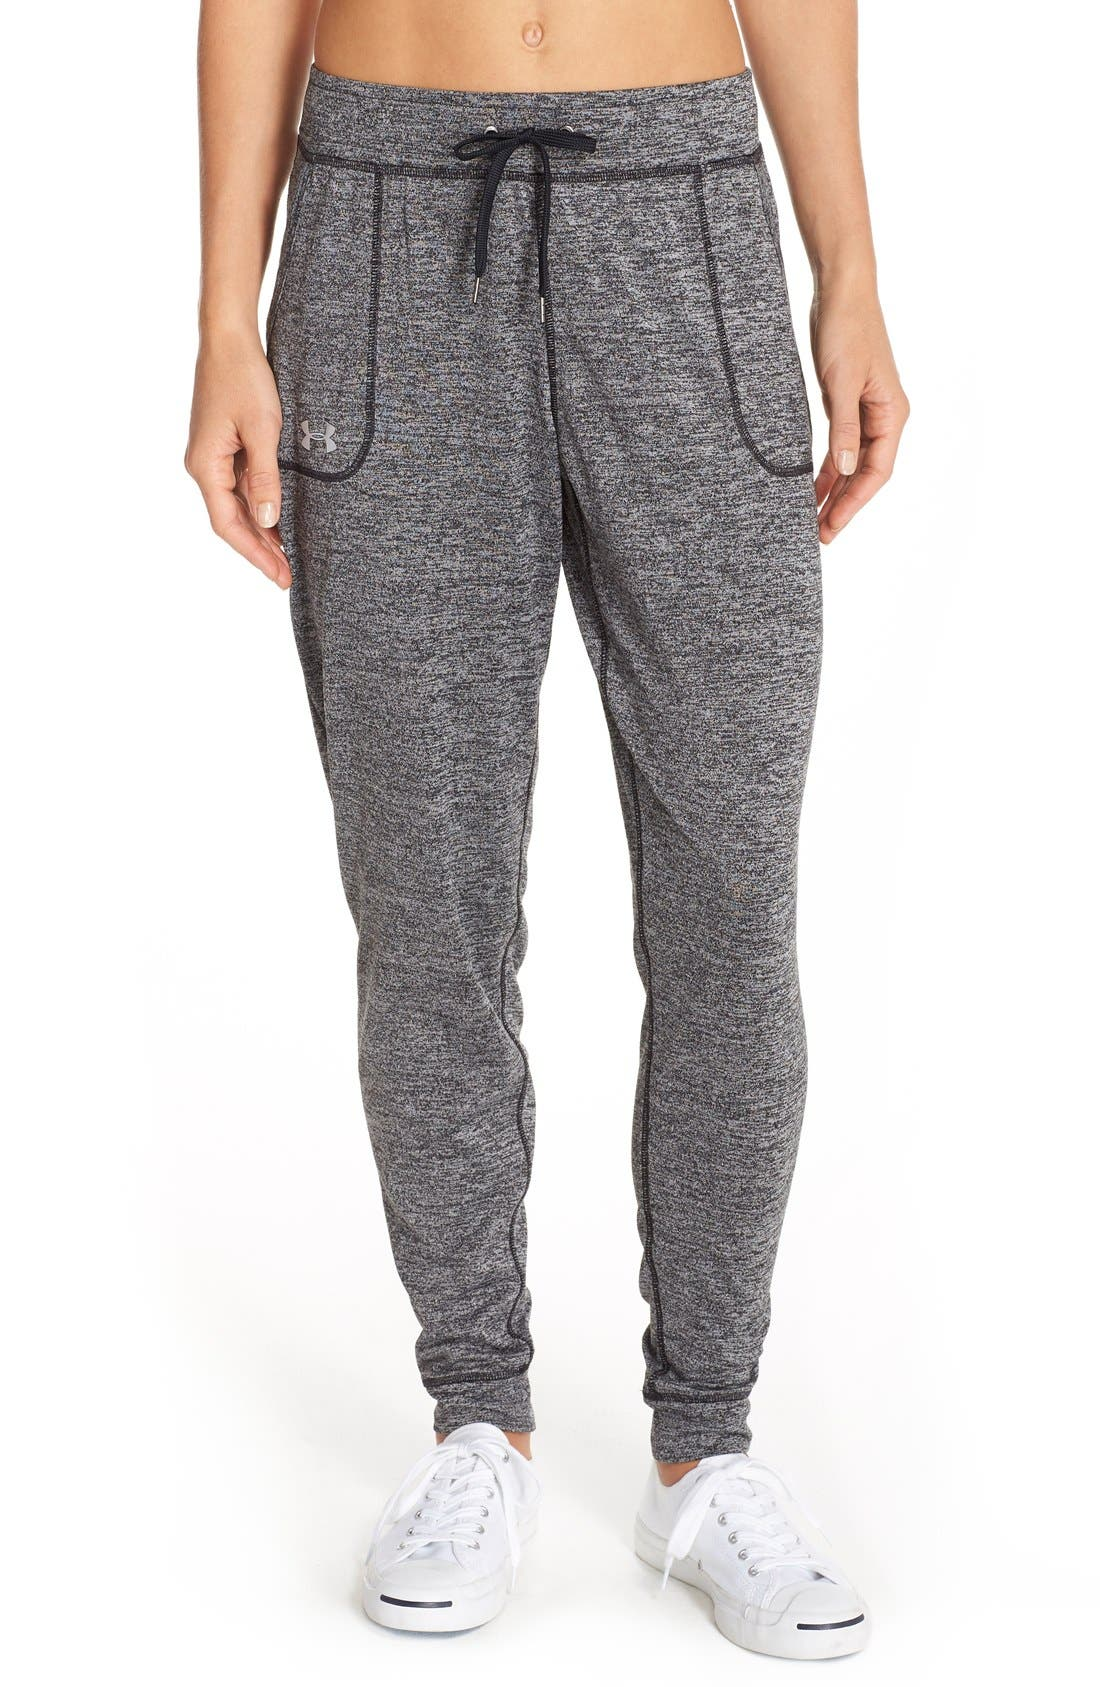 Alternate Image 1 Selected - Under Armour 'Twist' Jogger Pants